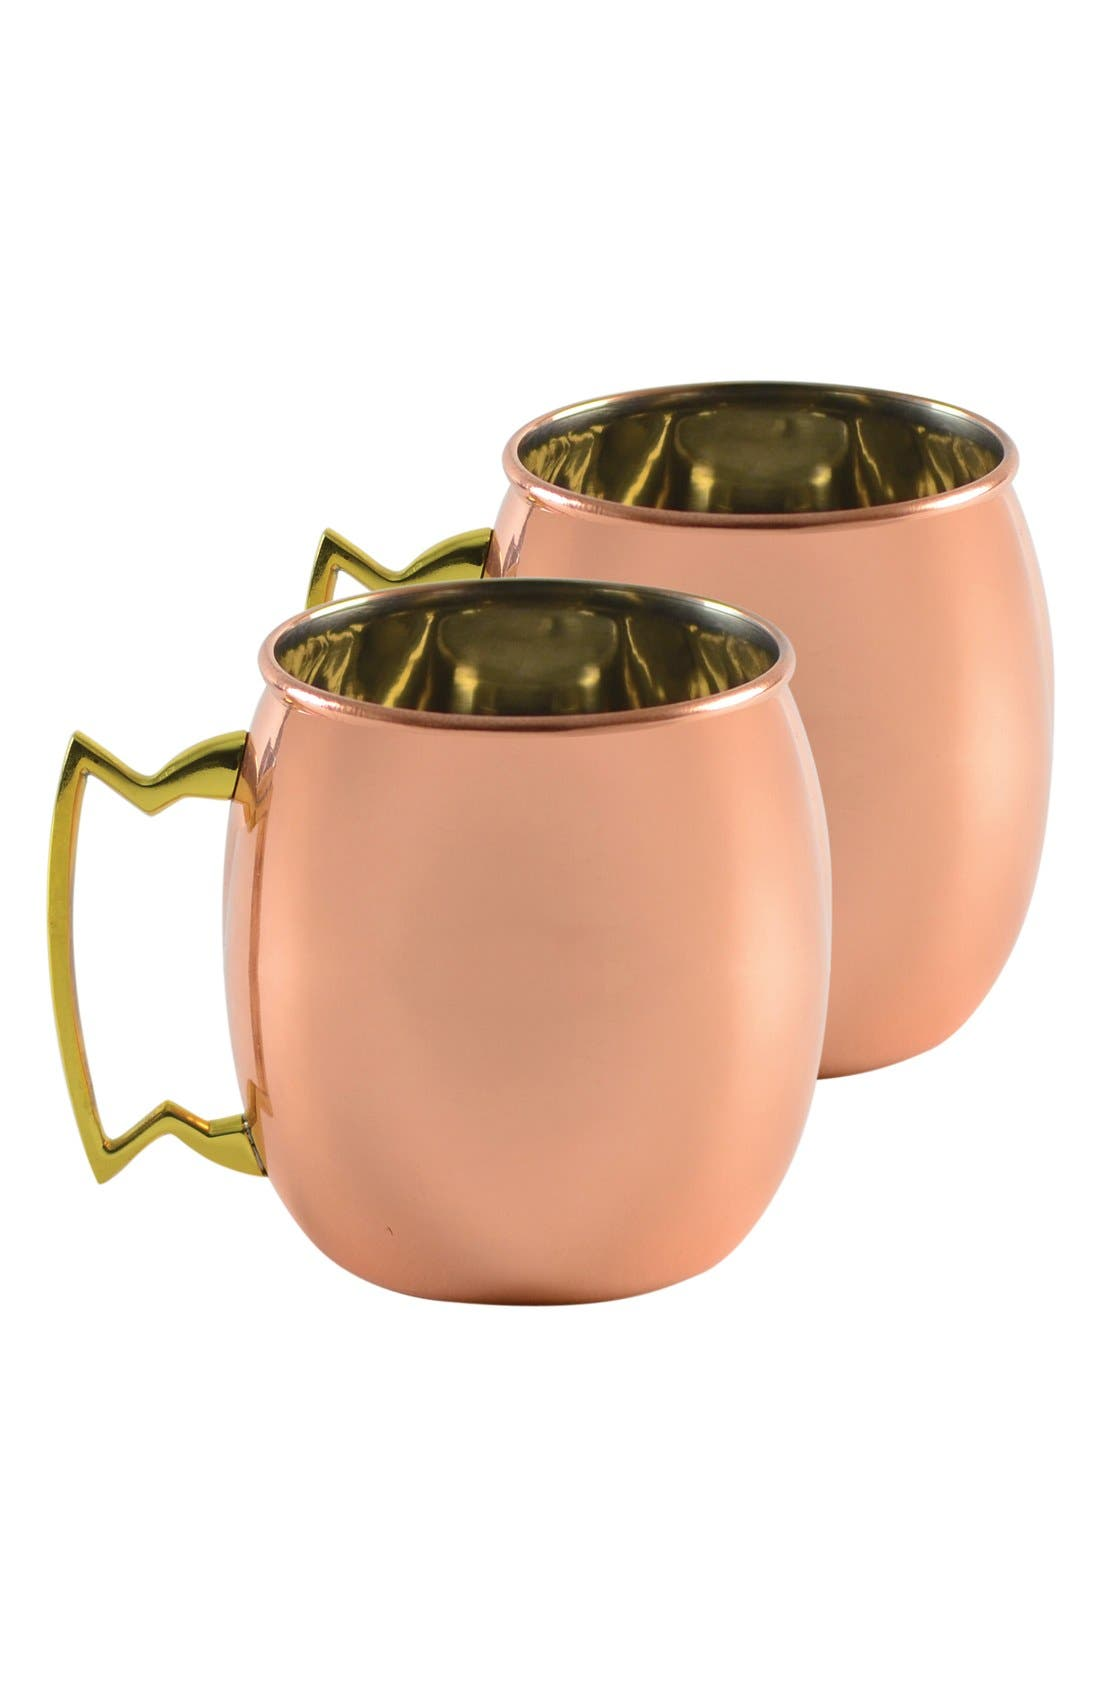 Main Image - 10 Strawberry Street 'Moscow Mule' Copper Mugs (Set of 2)